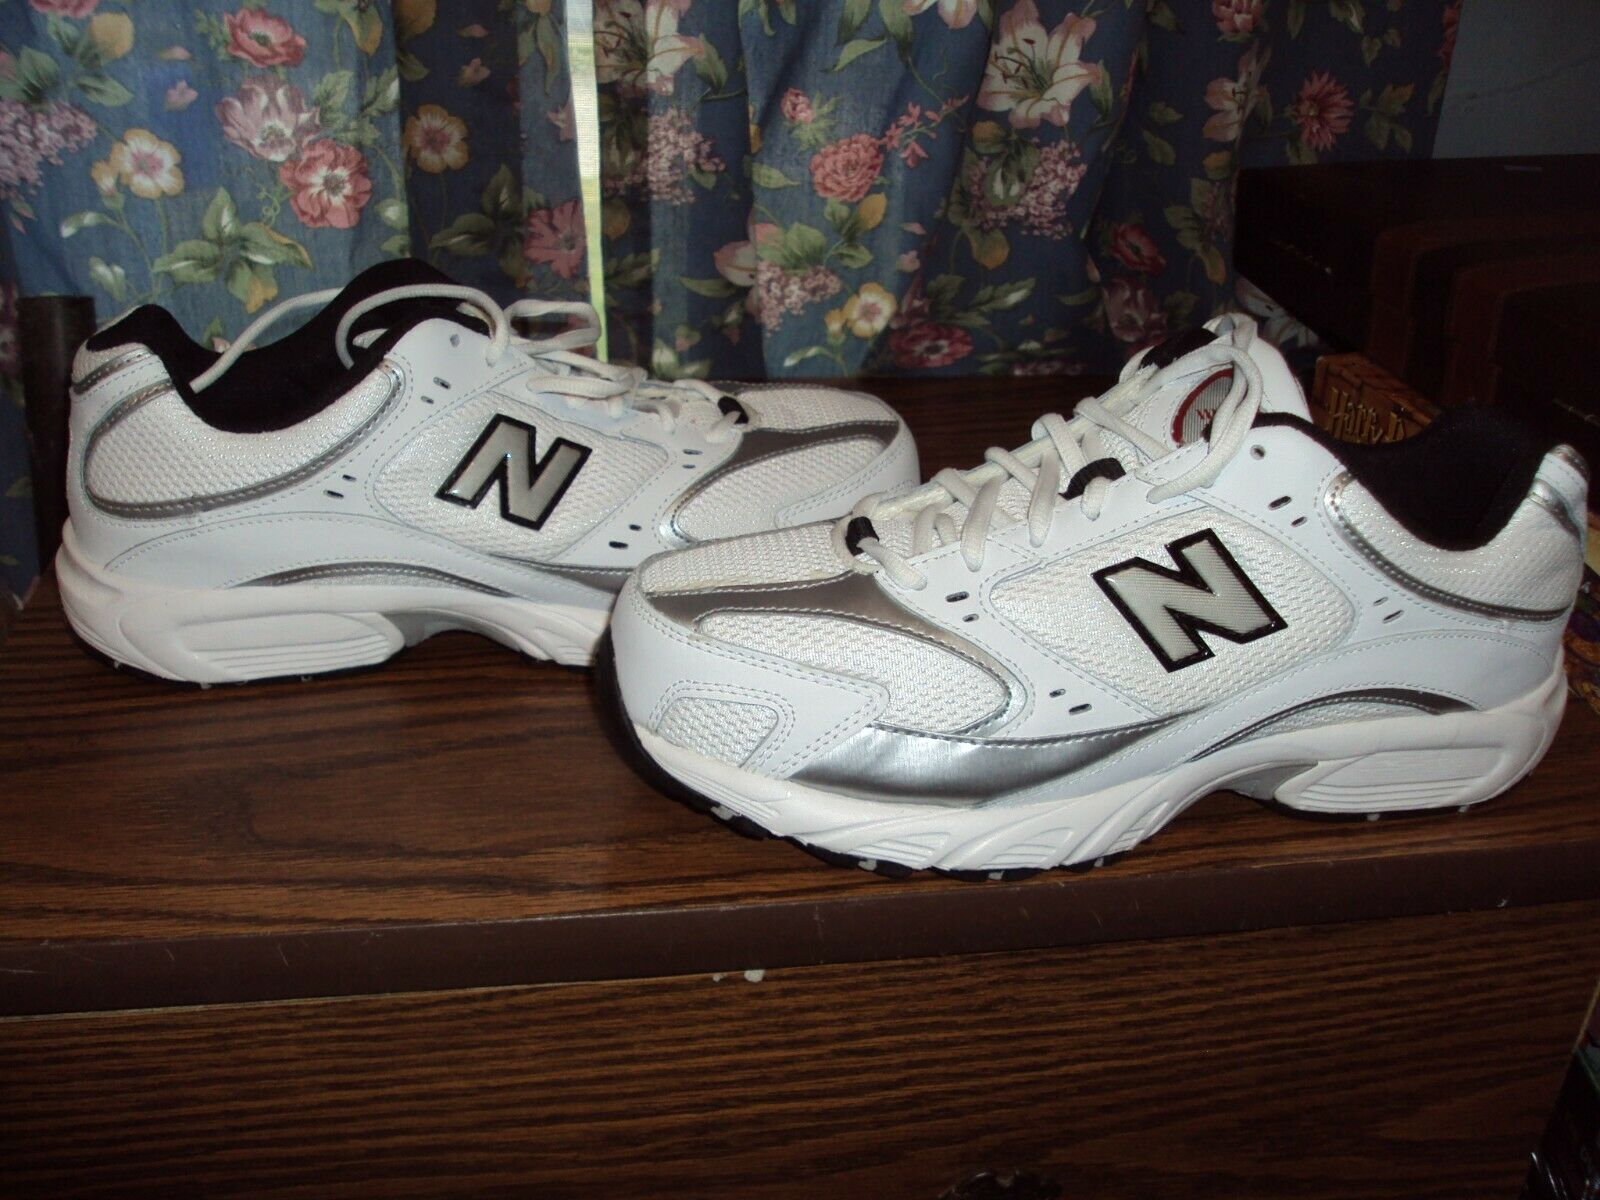 New Balance 405 Men's Size 9.5 4E US MR405WBR Running Shoes Sneakers (NEW)